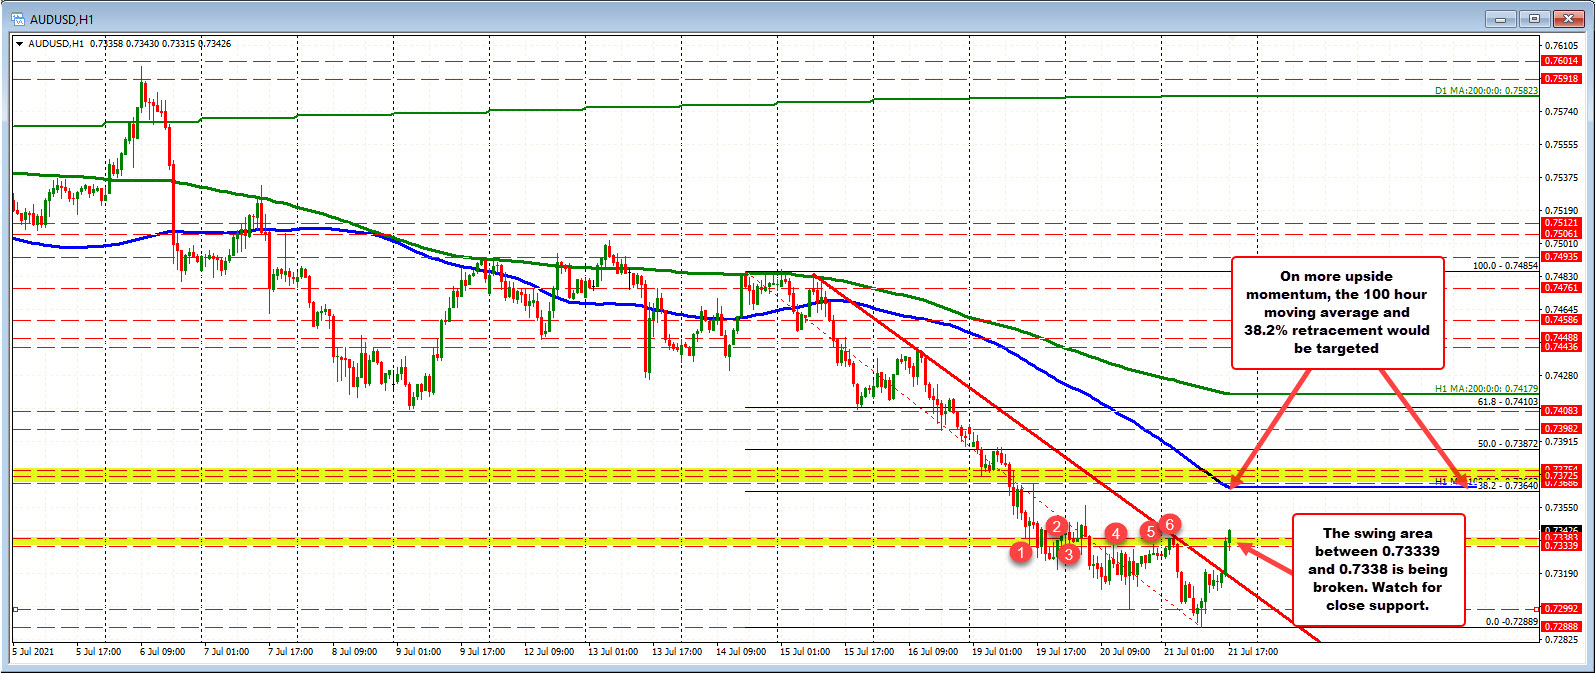 Price of AUDUSD moved aboveswing area between 0.7333 and 0.73383_